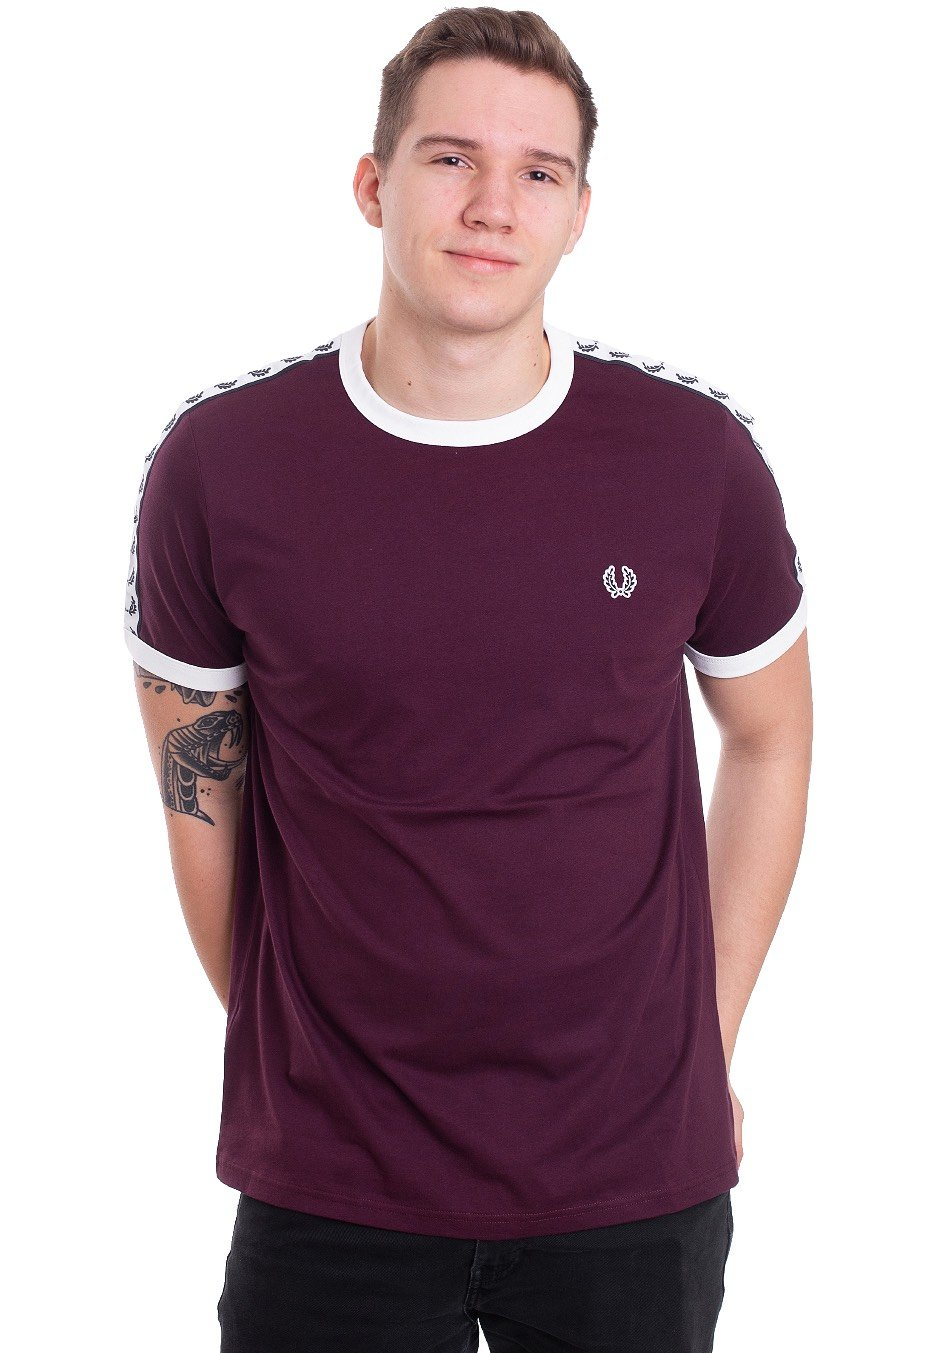 f310fb29 Fred Perry - Taped Ringer Mahogany - T-Shirt - Streetwear Shop -  Impericon.com Worldwide